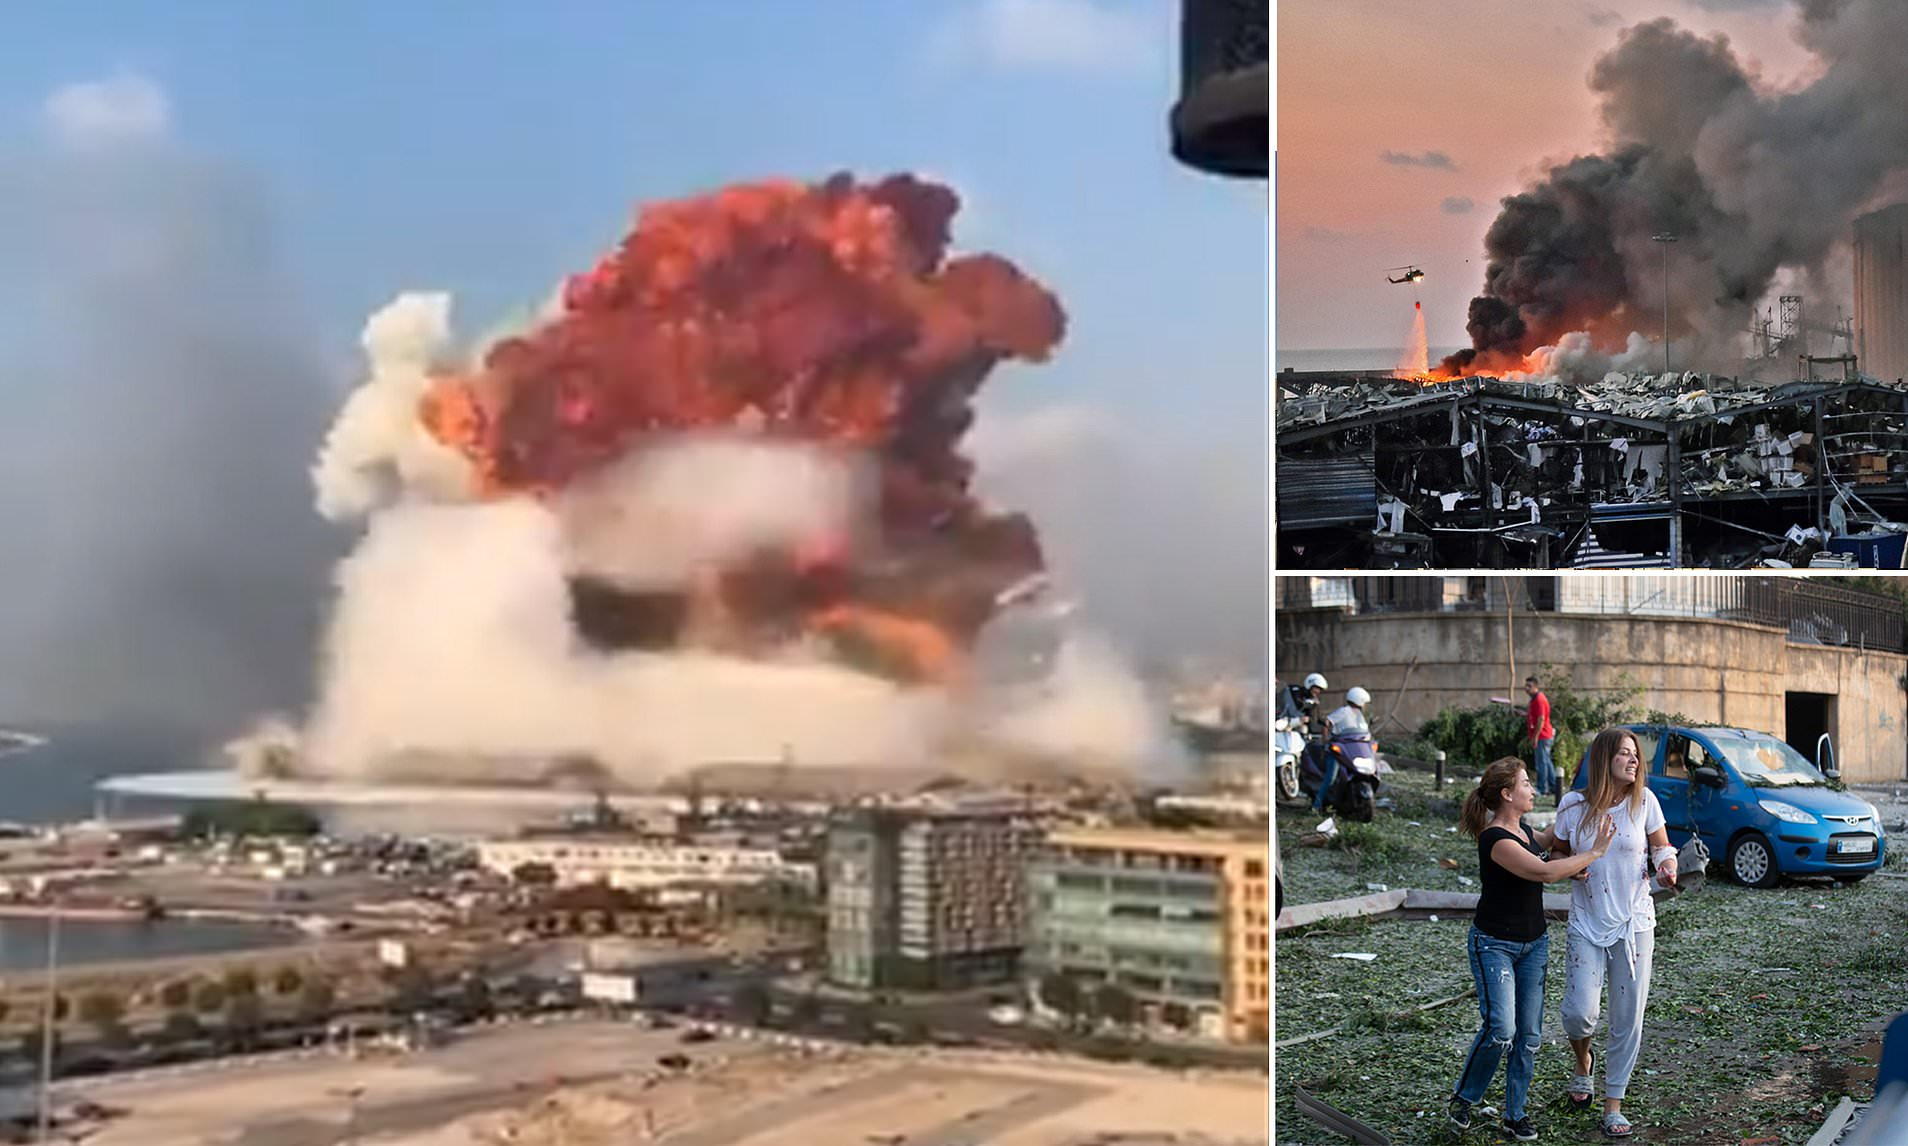 How could she be, her logic goes, when. Video shows moment of explosion in Beirut: The cause and